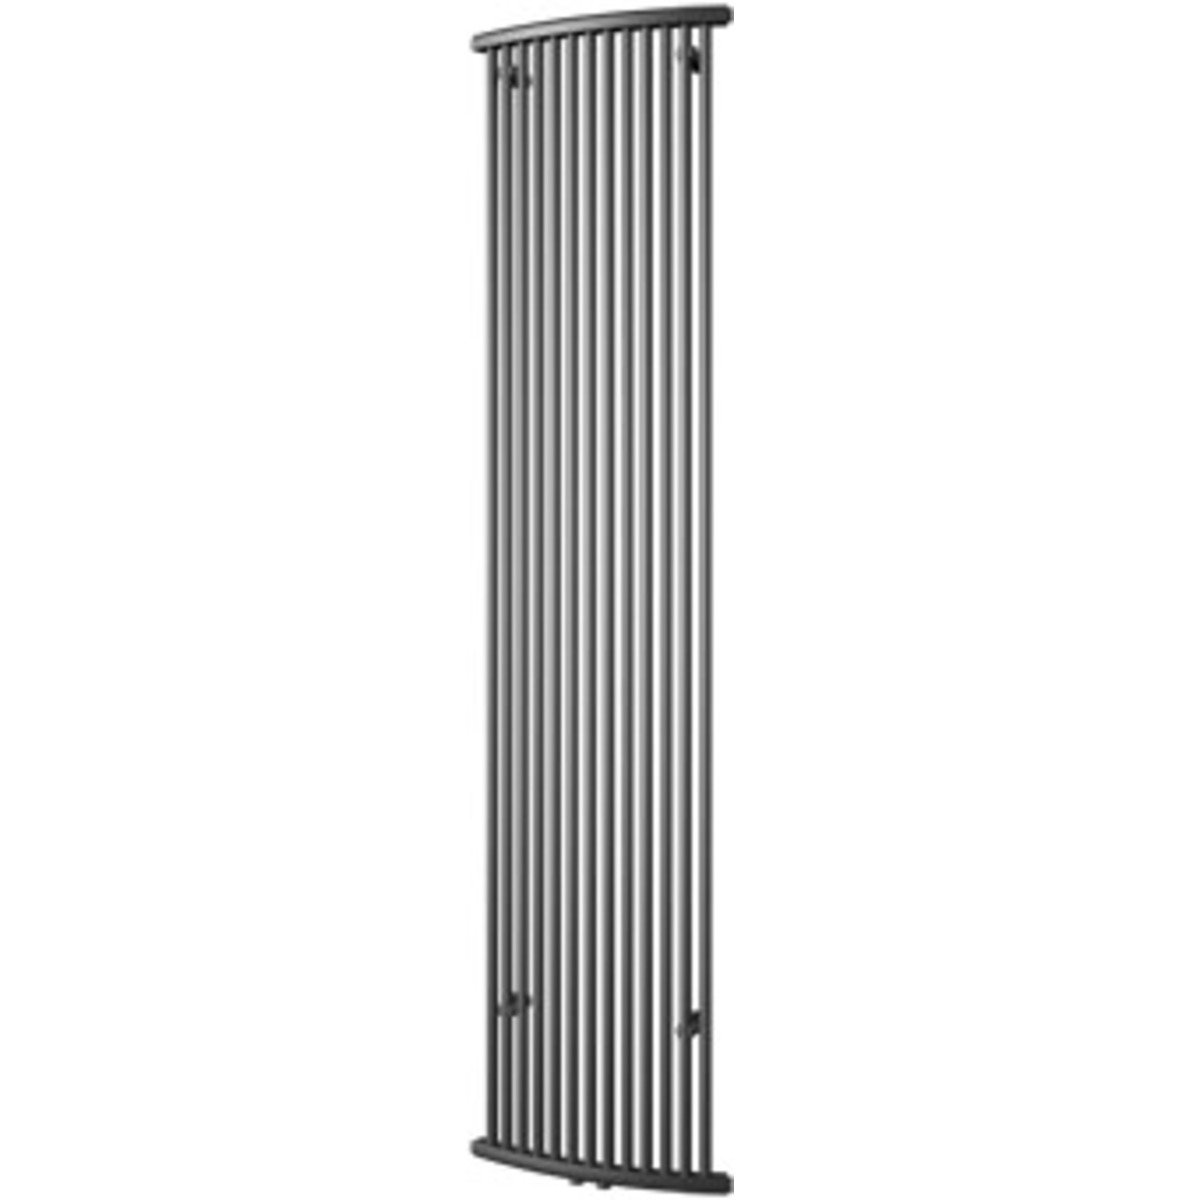 plieger napoli radiateur design vertical 200x48cm 885w gris perle 7252350. Black Bedroom Furniture Sets. Home Design Ideas